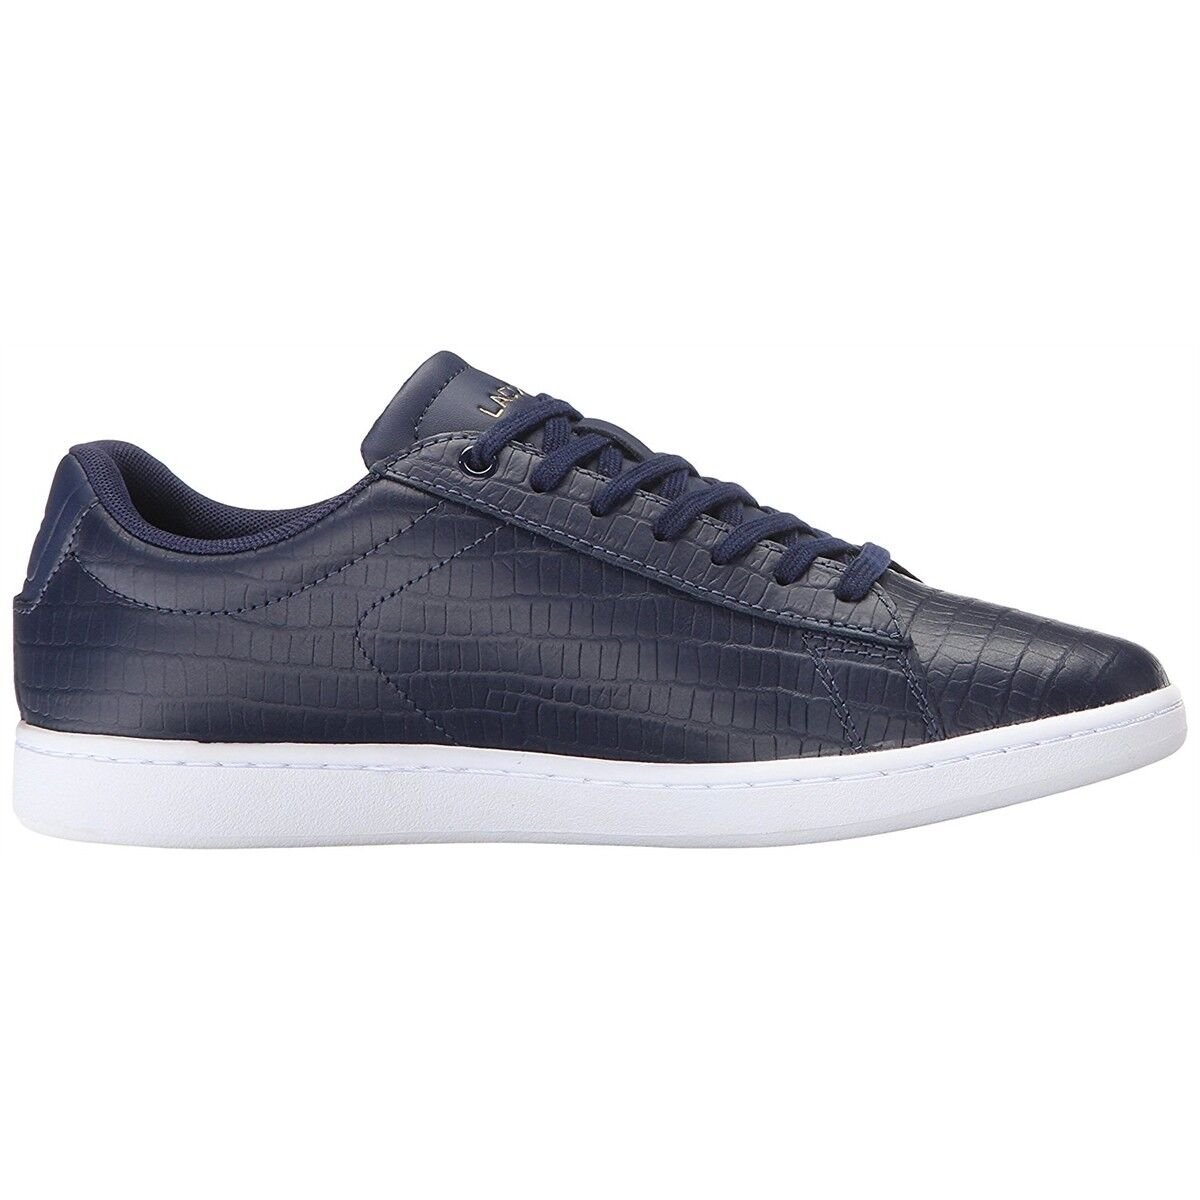 Lacoste Fashion Damens Carnaby Evo Series Spw Fashion Lacoste Sneakers Lightweight Tennis Schuhes 51c366